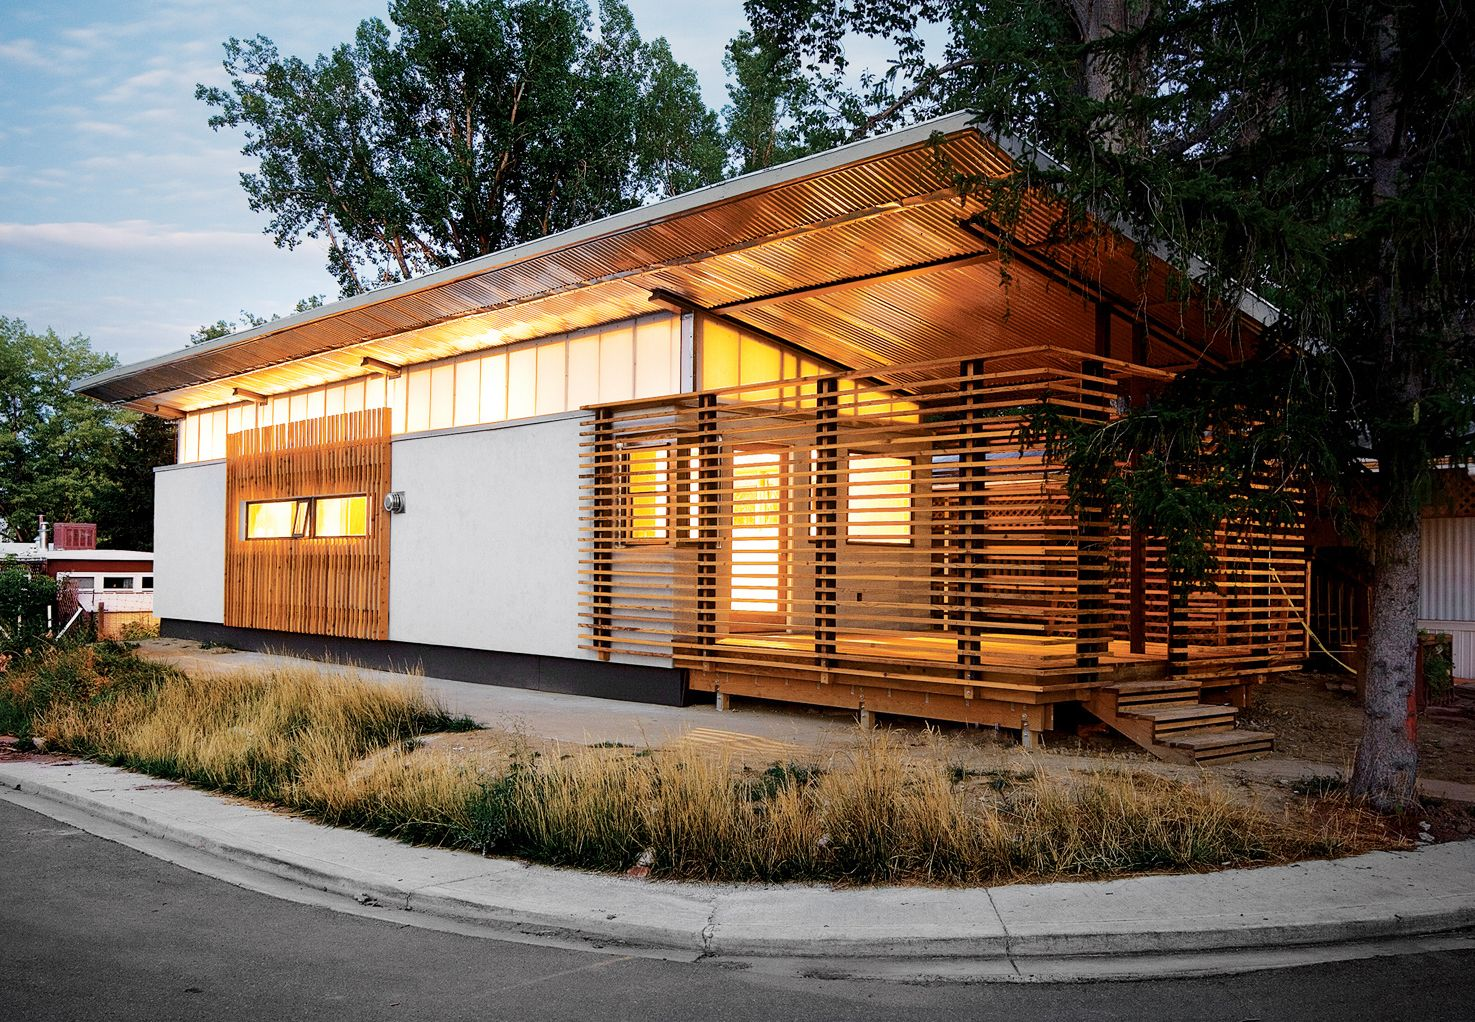 1000+ images about Ideas for mobile homes on Pinterest - ^